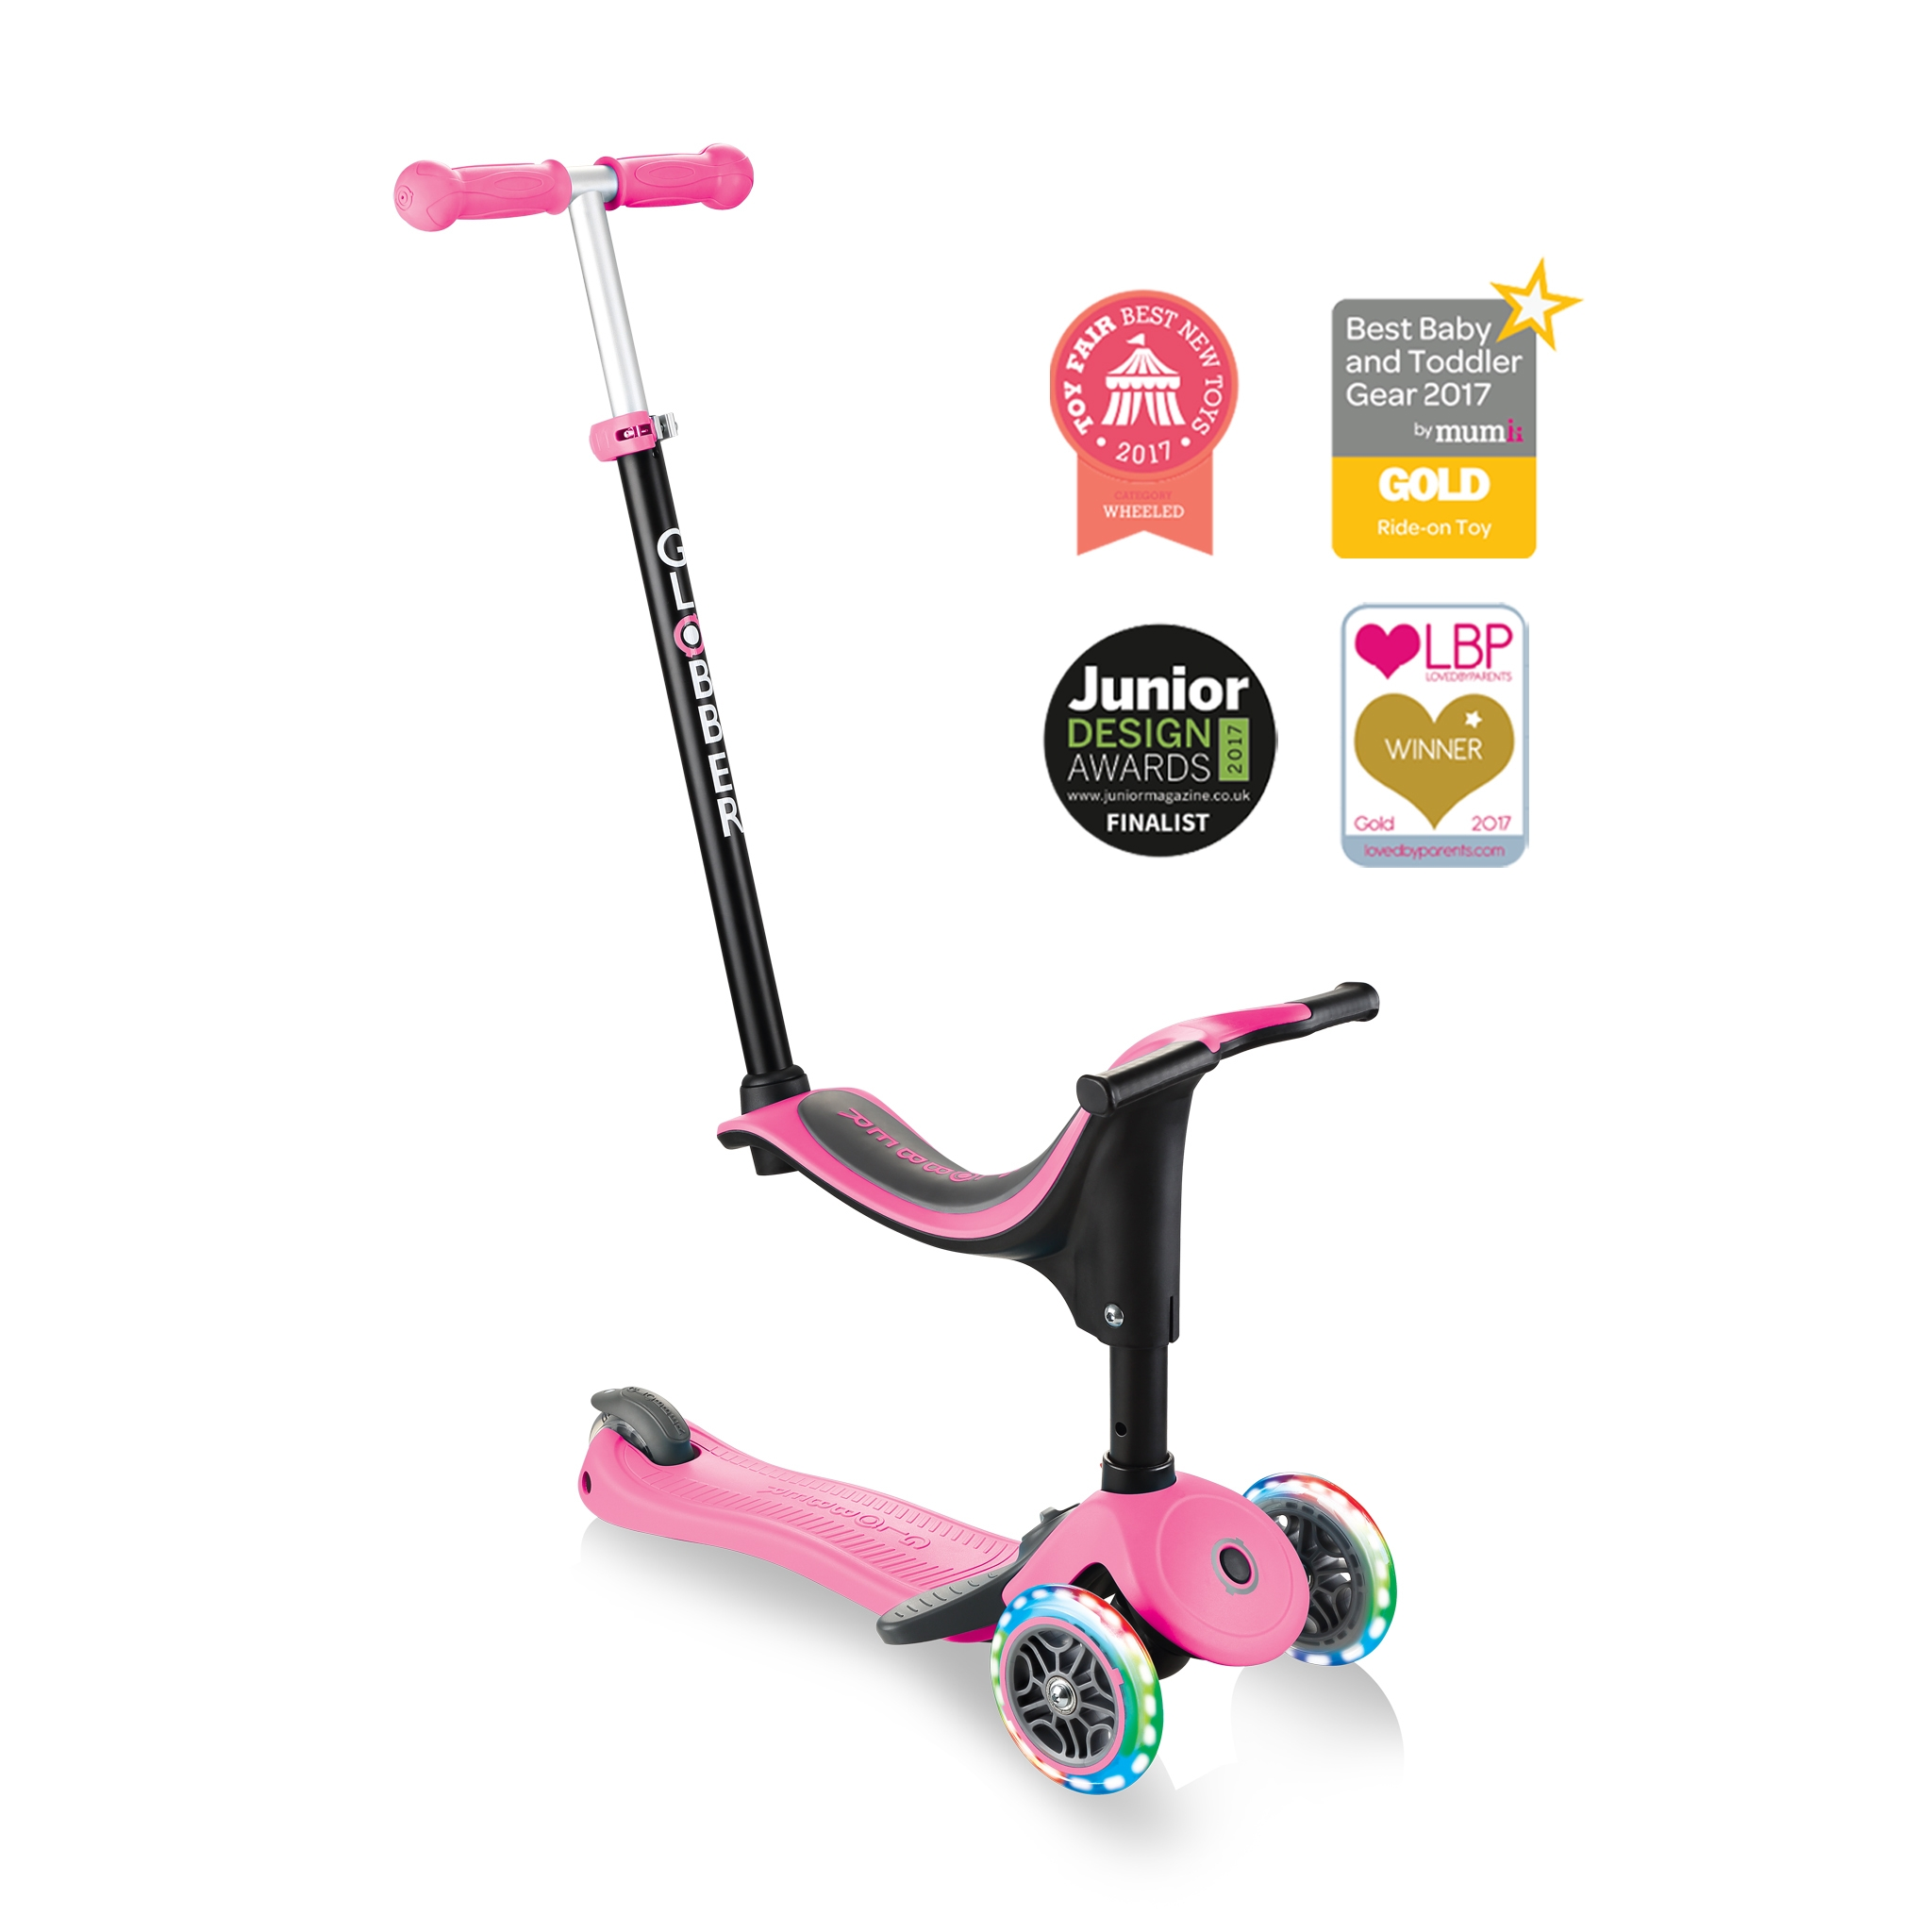 GO-UP-SPORTY-PLUS-LIGHTS-scooter-with-seat-ride-on-mode_deep-pink 0